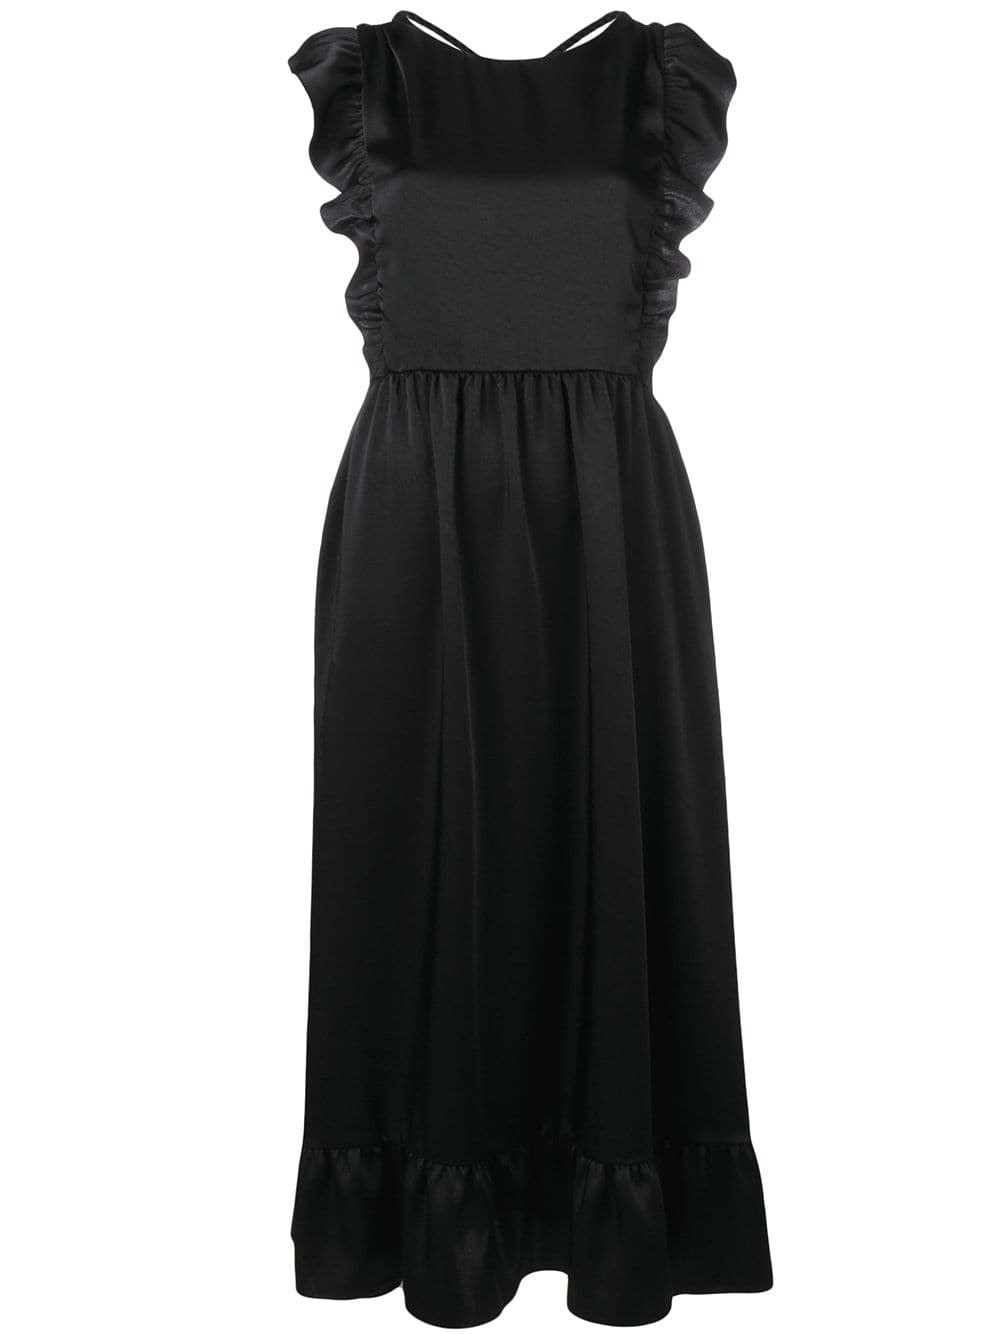 7738fe66237 Black Dress With Open Back - RED VALENTINO - Russocapri